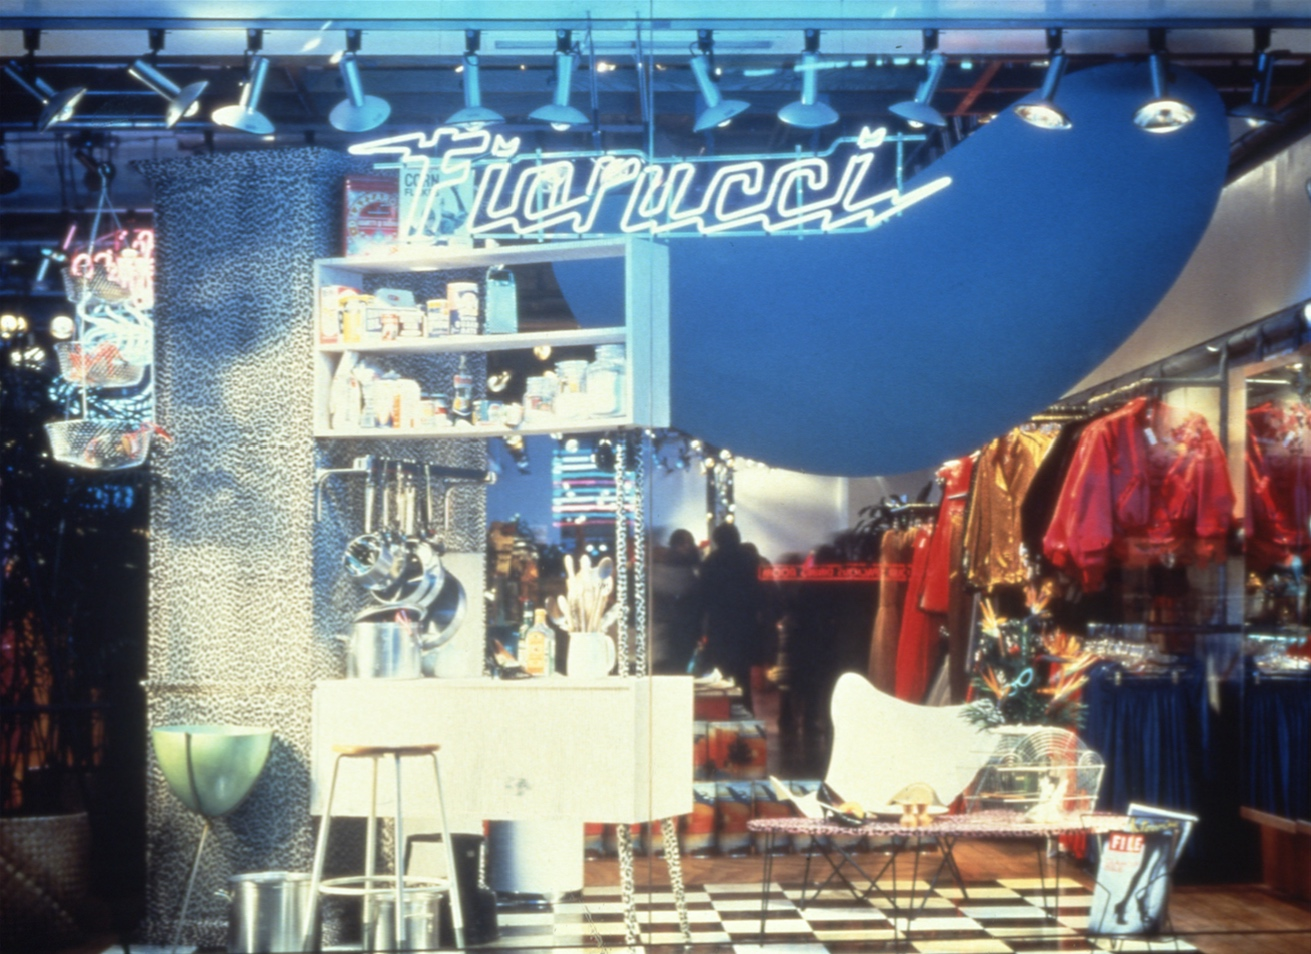 Window of the Fiorucci store, New York 1976